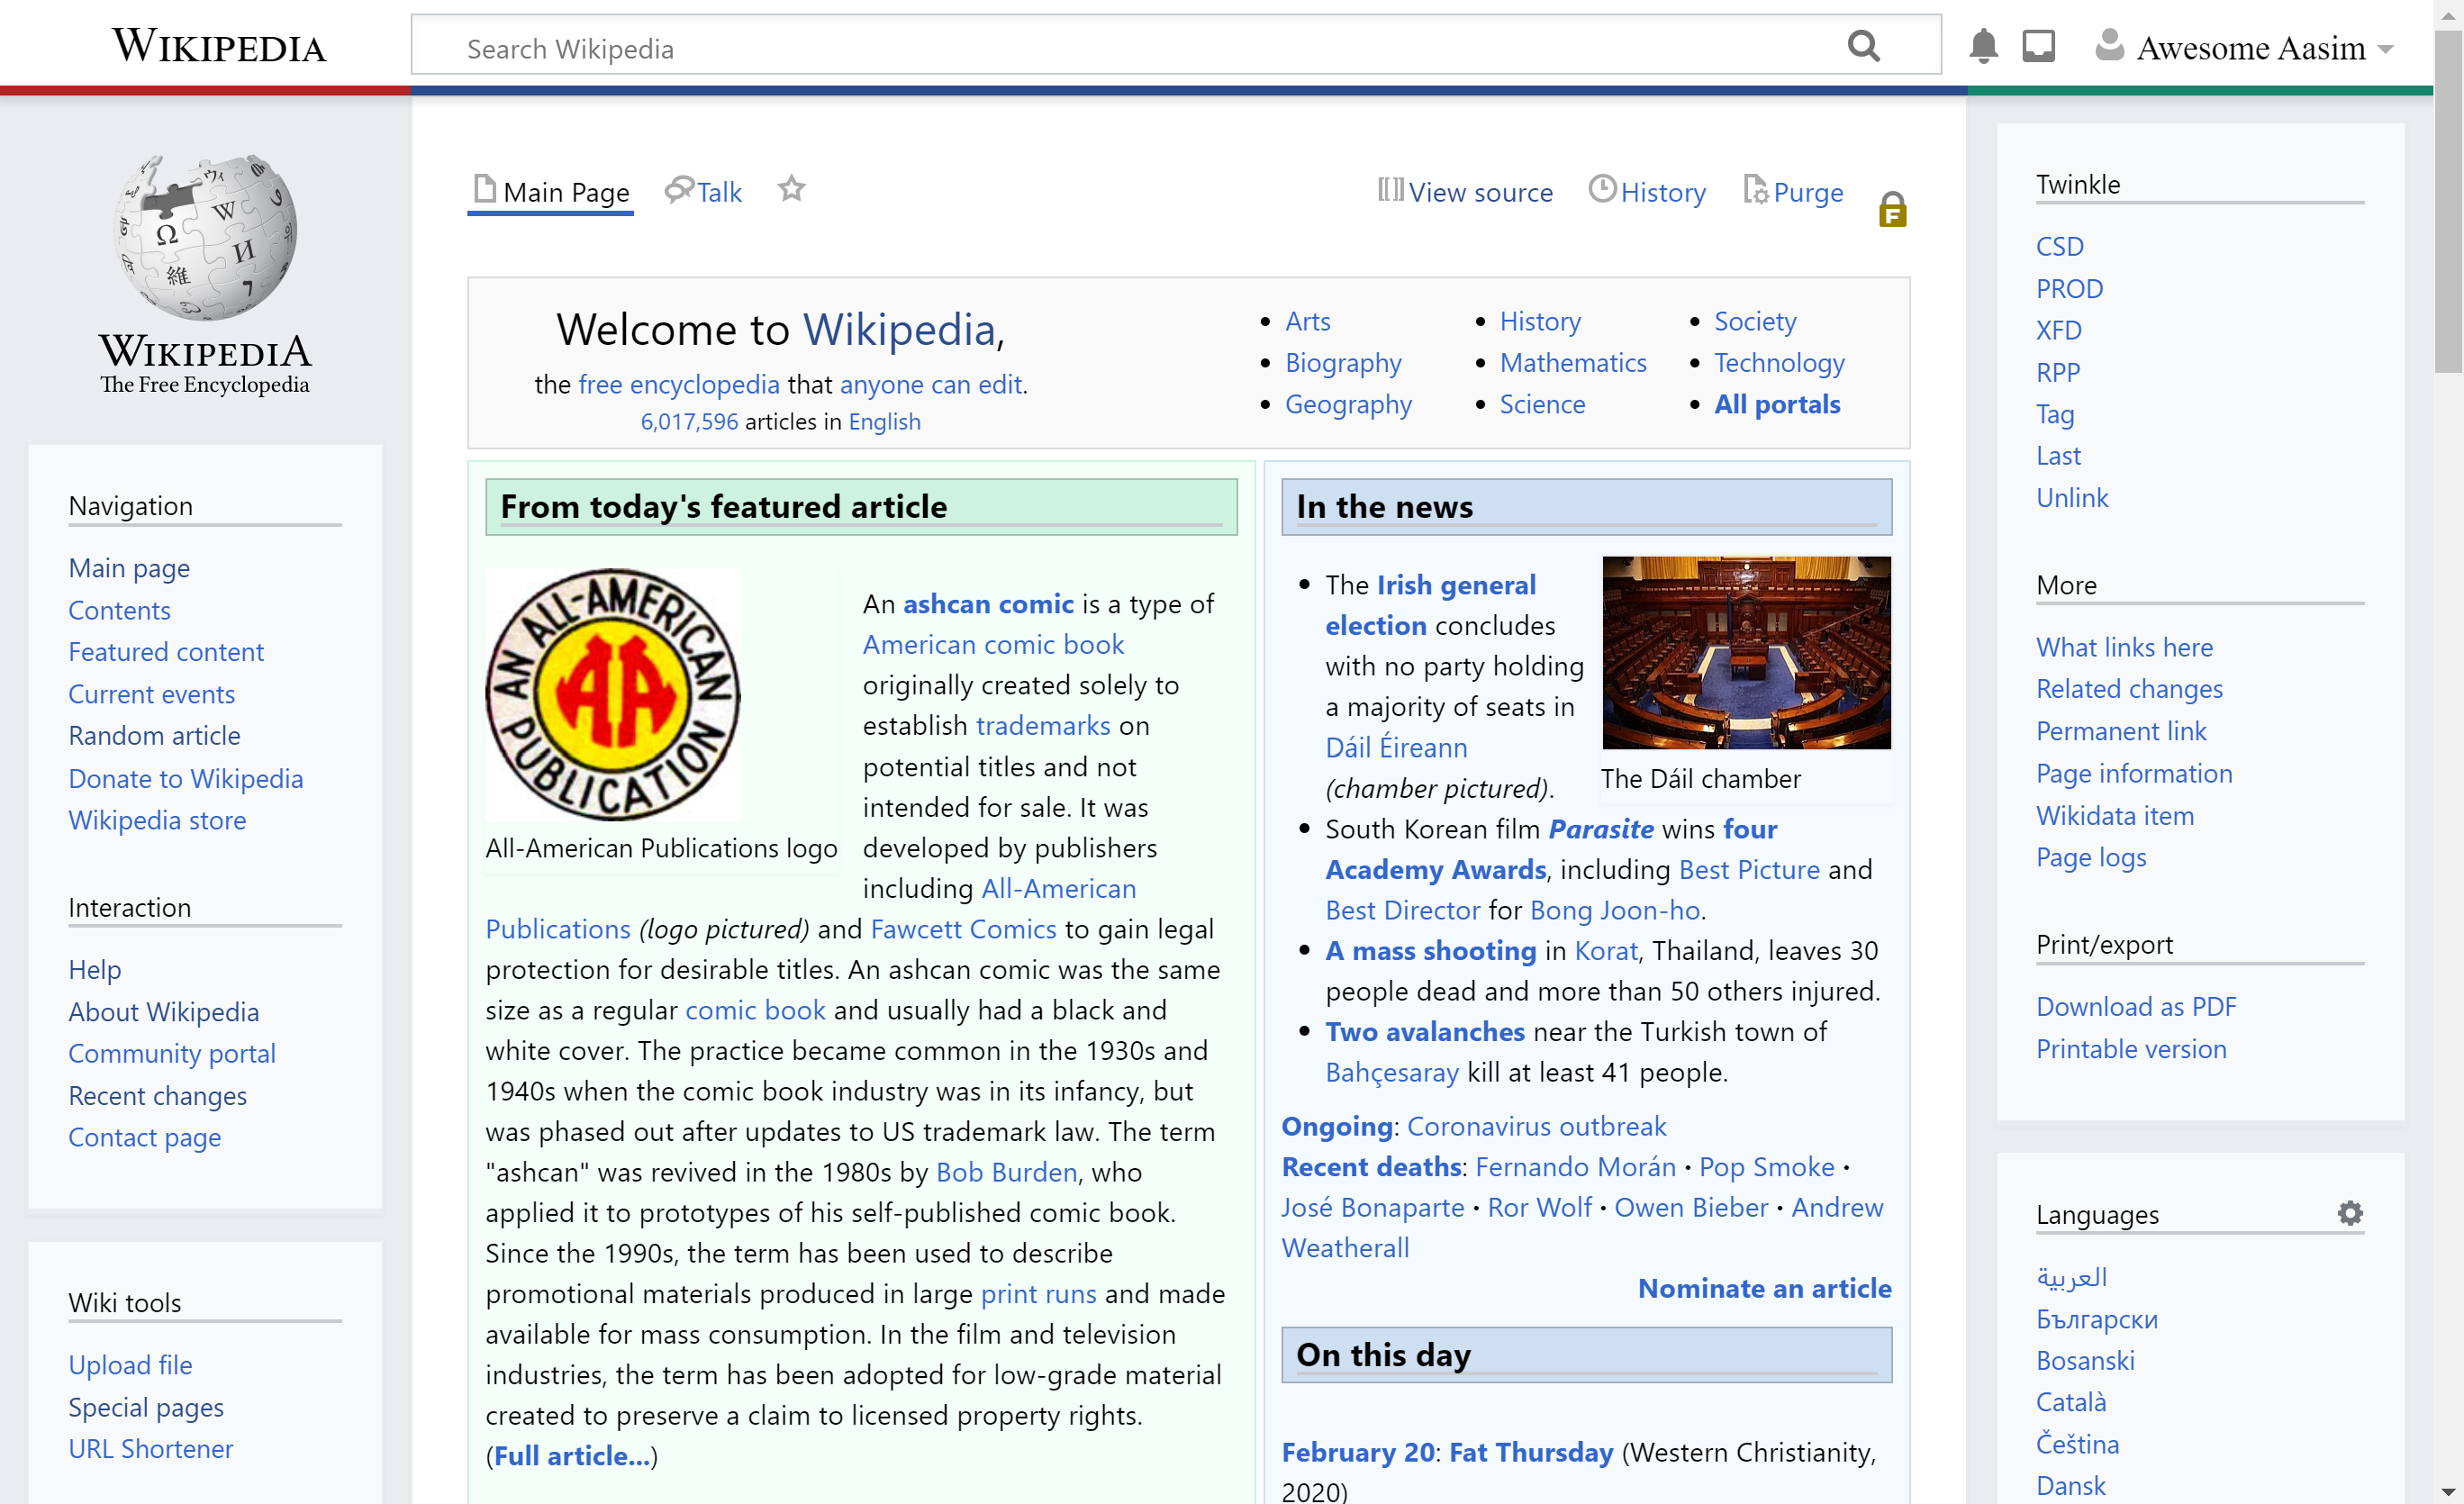 Responsive Web Design Wikipedia